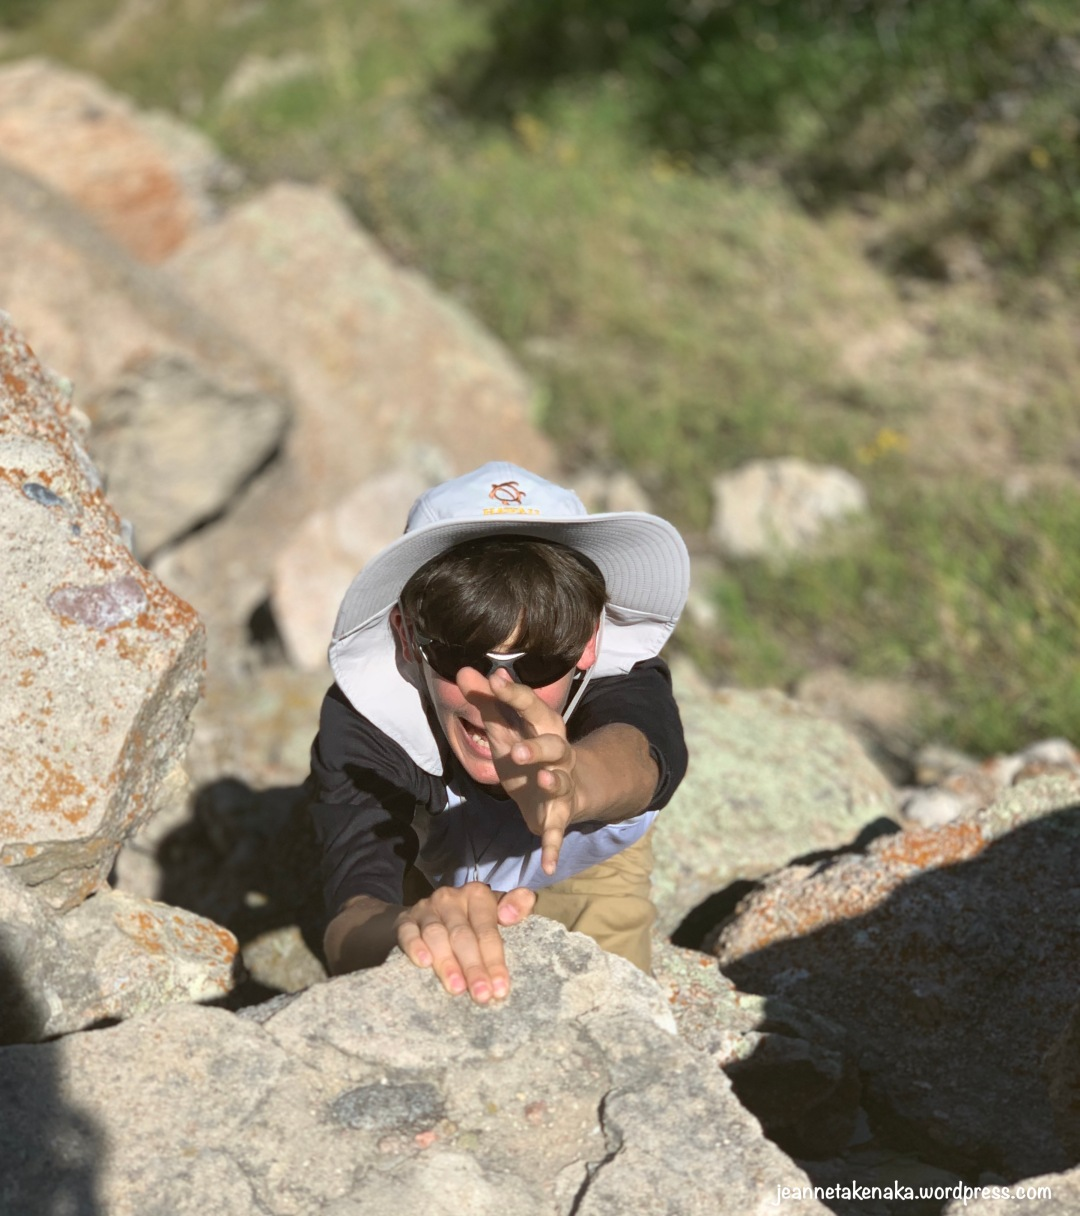 A young man hanging from rocks and holding one hand up for help